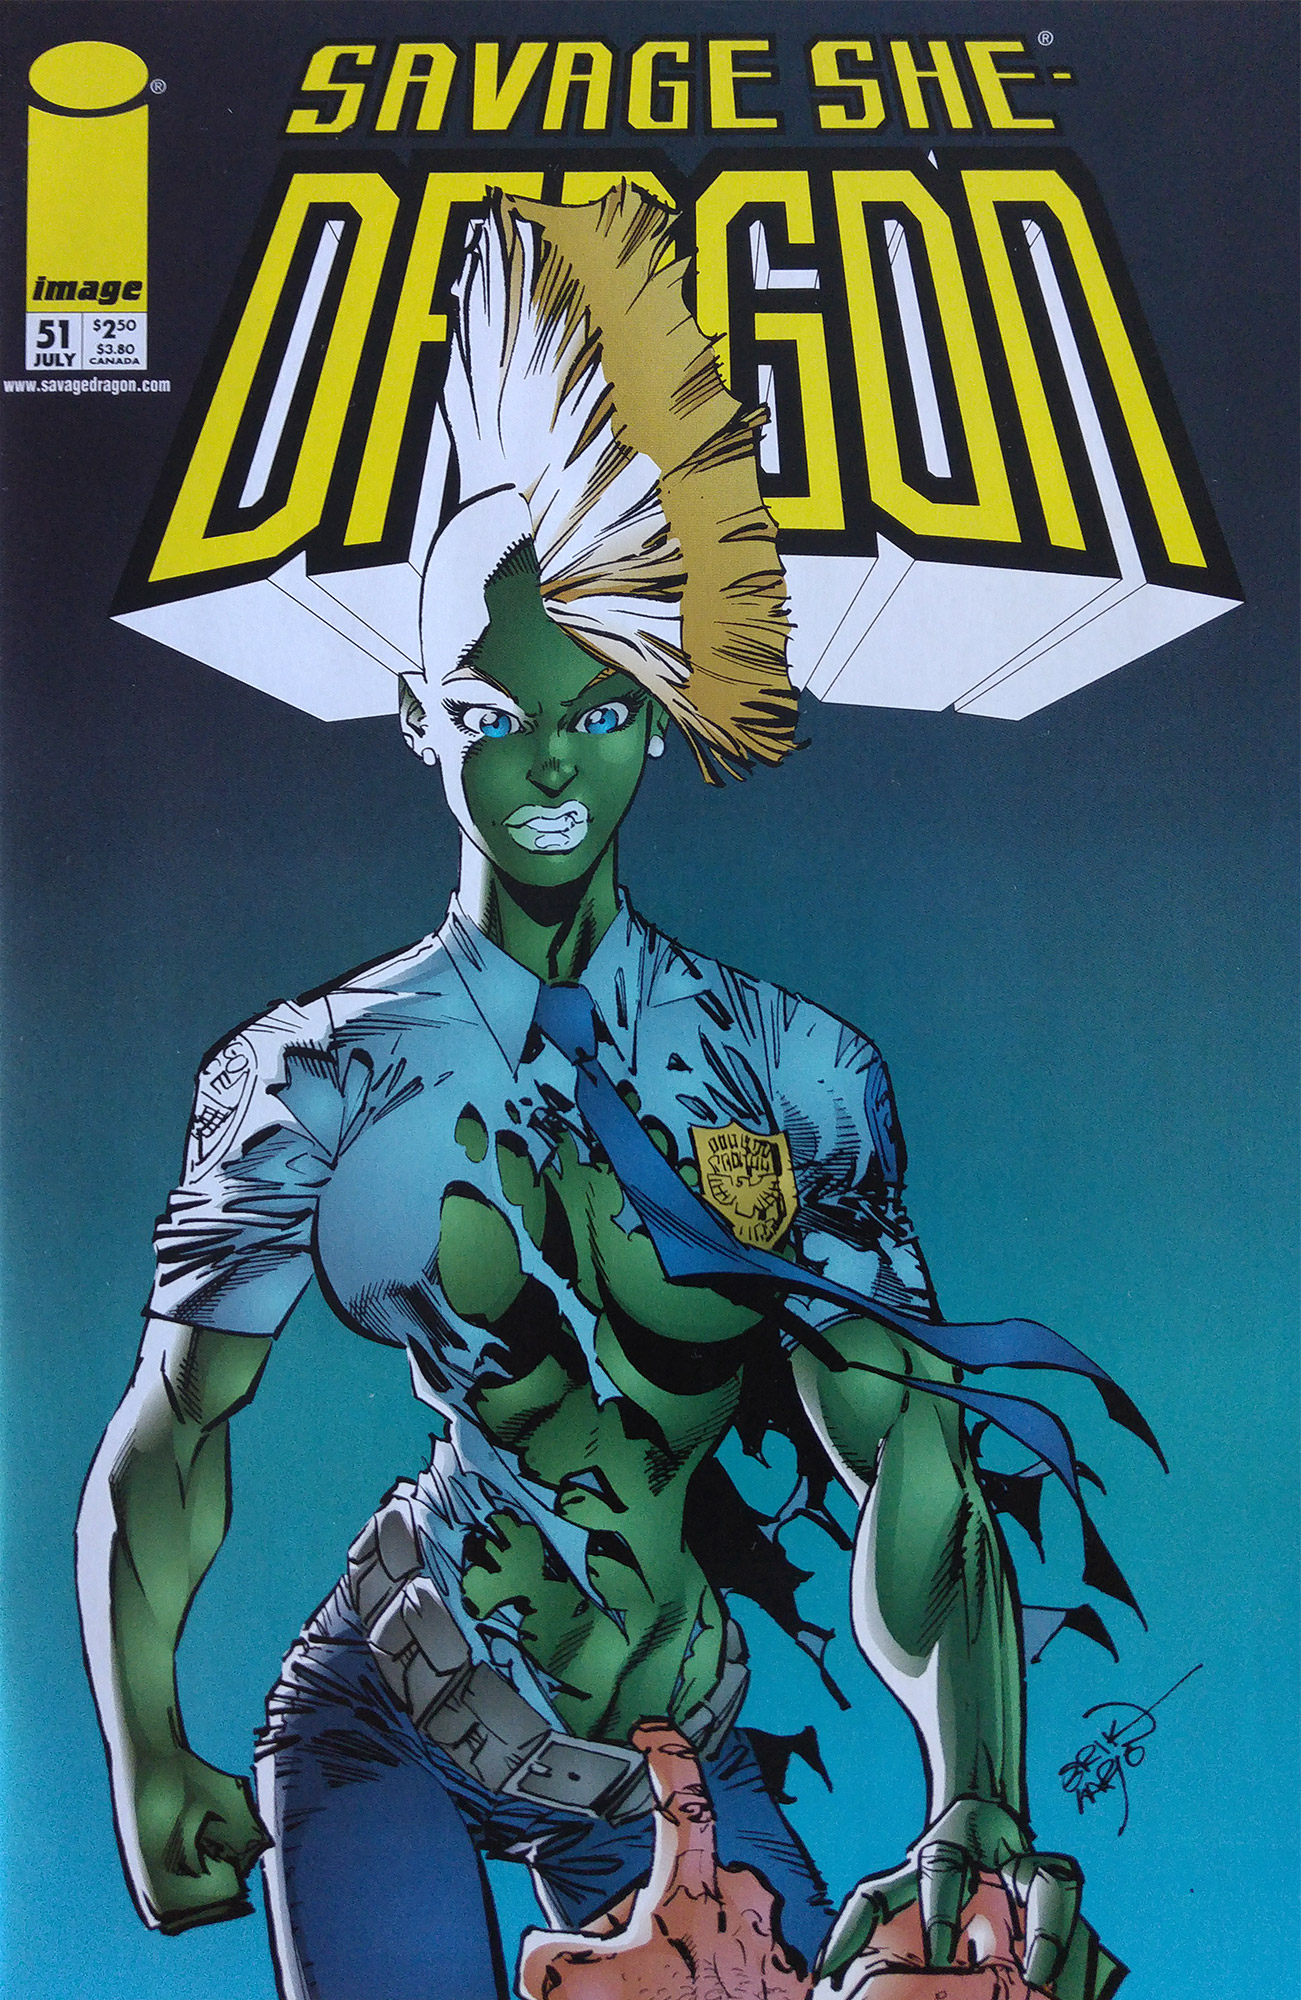 Cover Savage Dragon Vol.2 #51